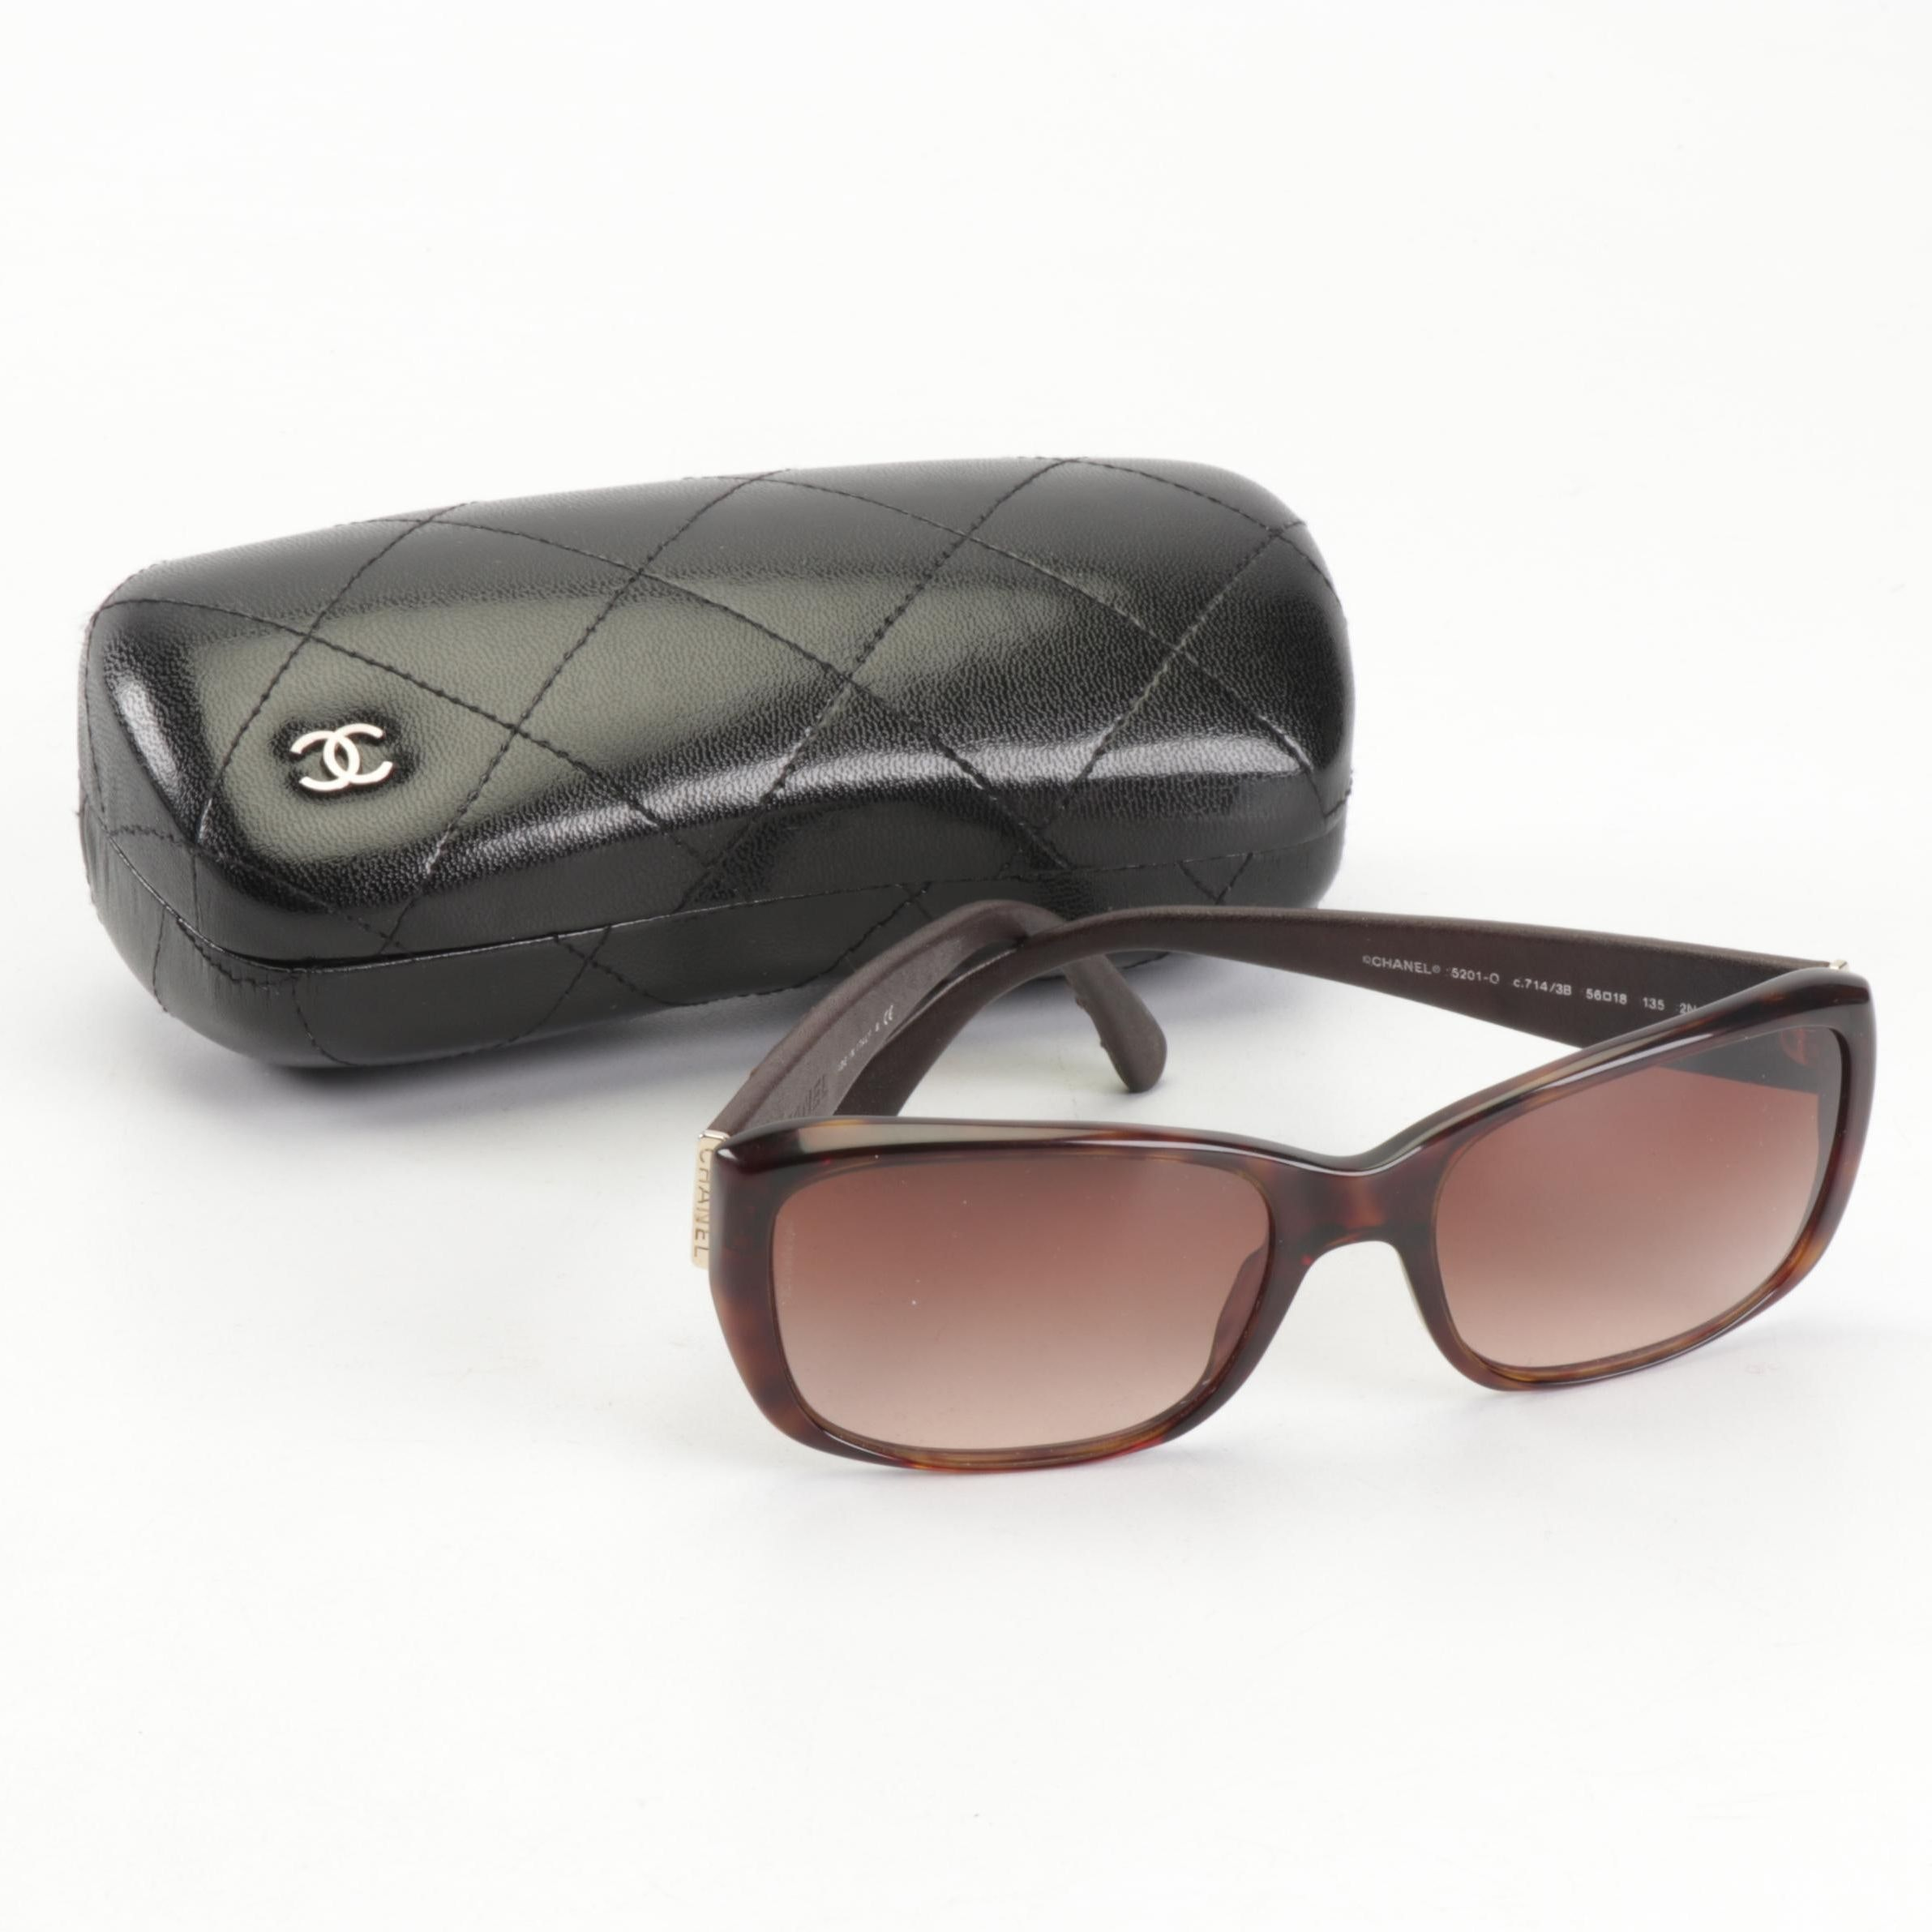 Chanel Quilted 5201-Q Gradient Sunglasses with Leather Case